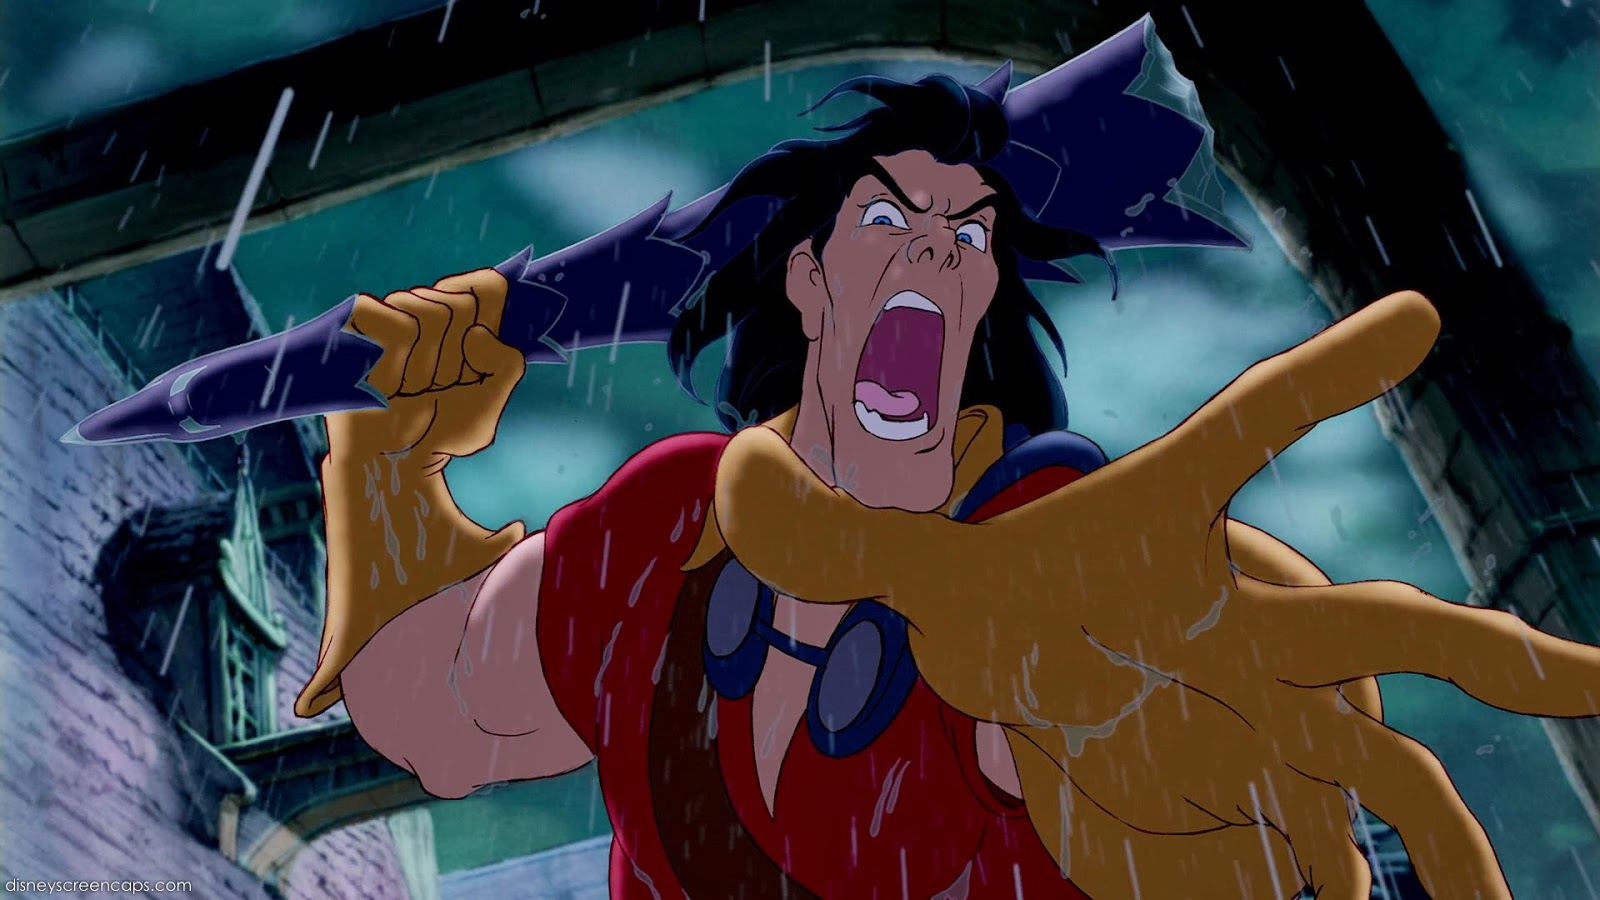 Resultado de imagem para beauty and the beast 1991 gaston fights the beast